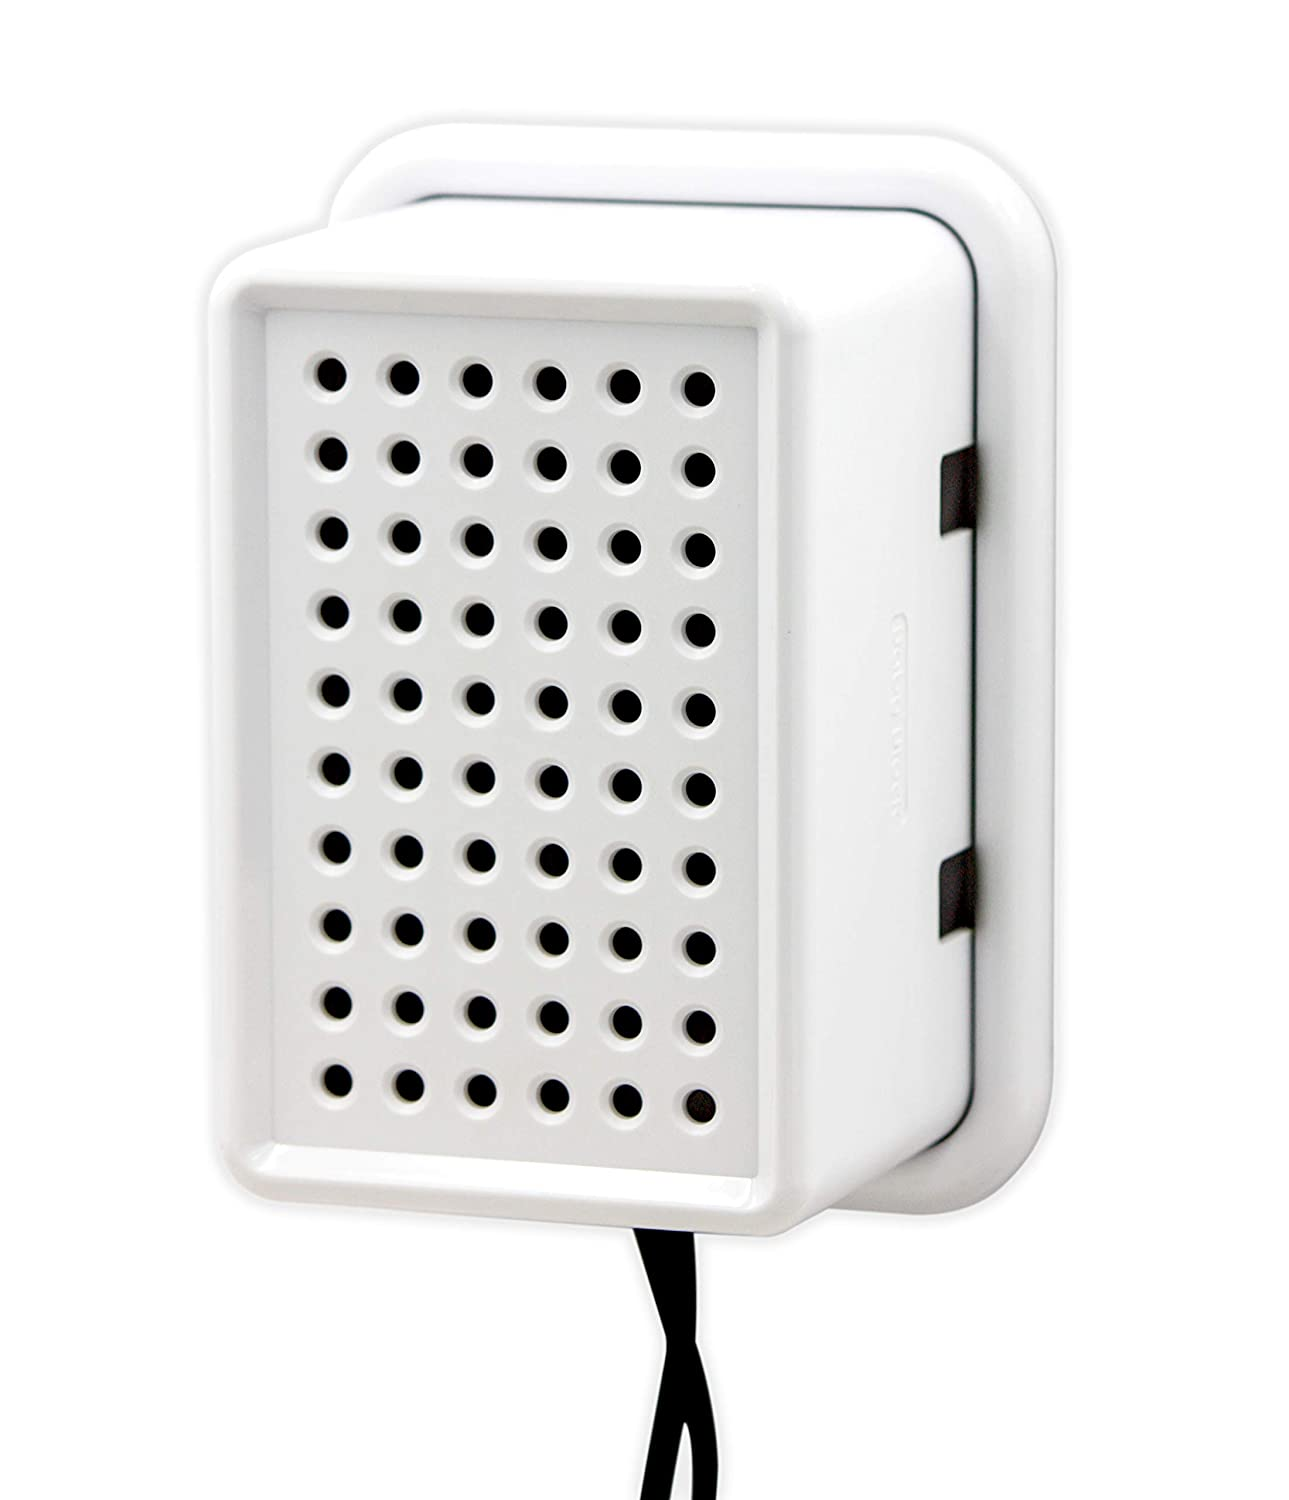 Baby Block Universal Power Outlet Cover Box | XL | Fits Large AC Adapters | Toddler Childproof Electric Outlets, Wall Sockets, Plugs, Cable & Cords | Indoor & Outdoor Compatible